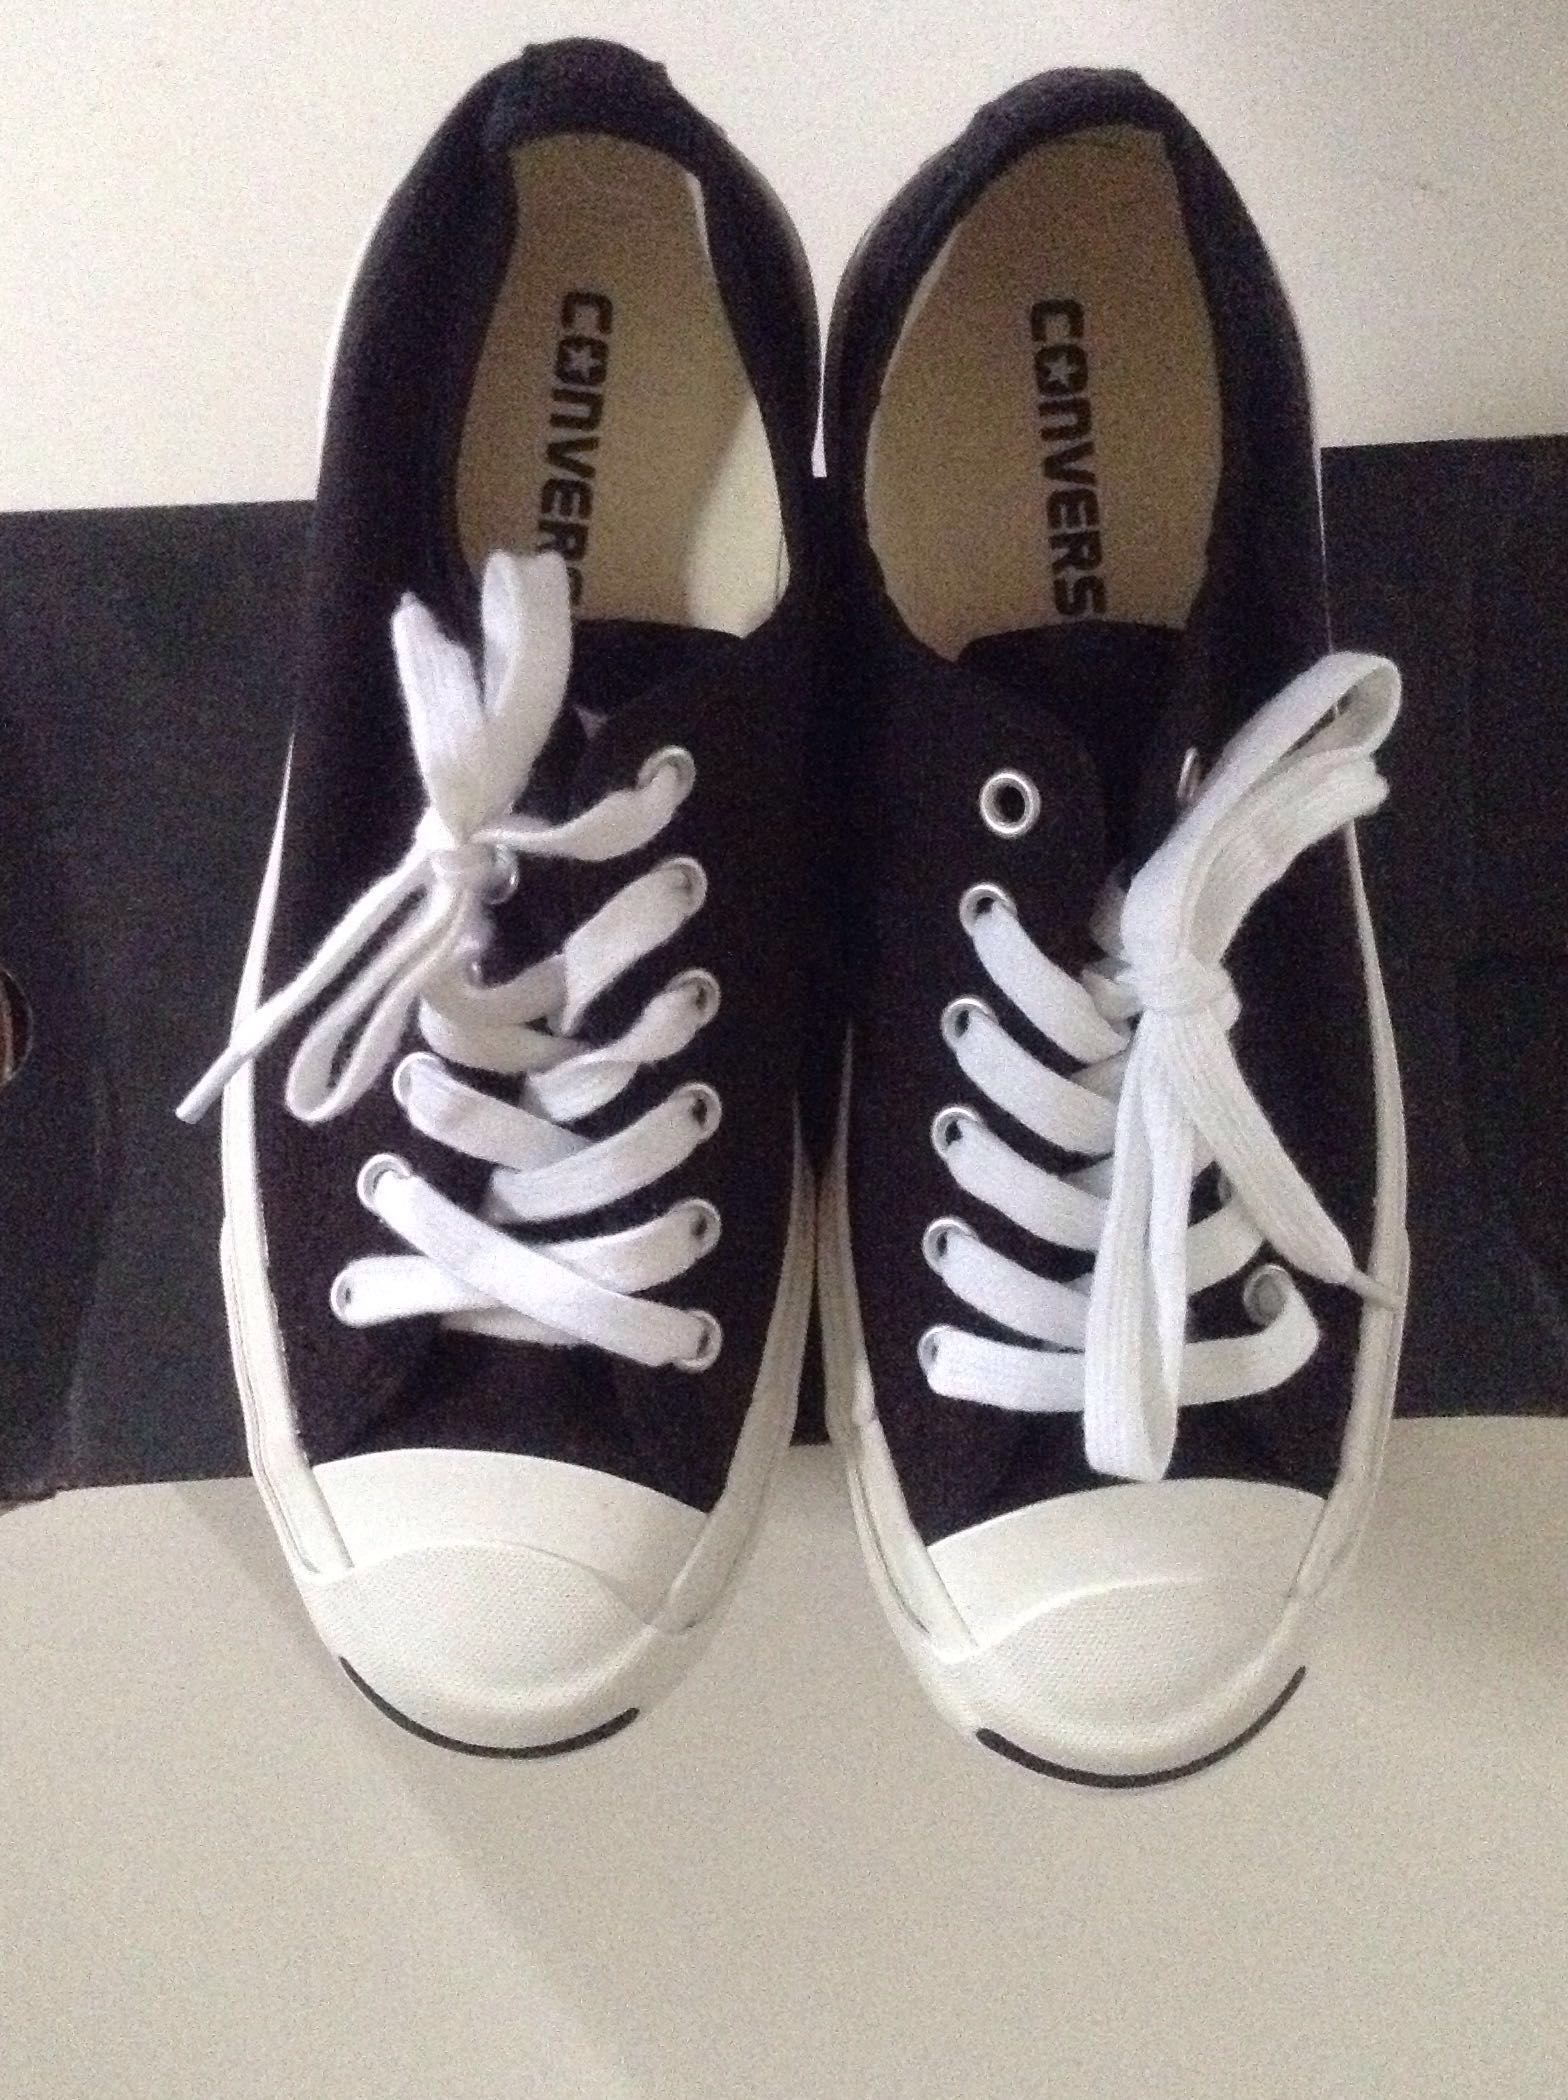 f0354664998c Athletic Shoes Converse Chuck Taylor all Star Sneakers High Men Women  Monochrome Black Limited